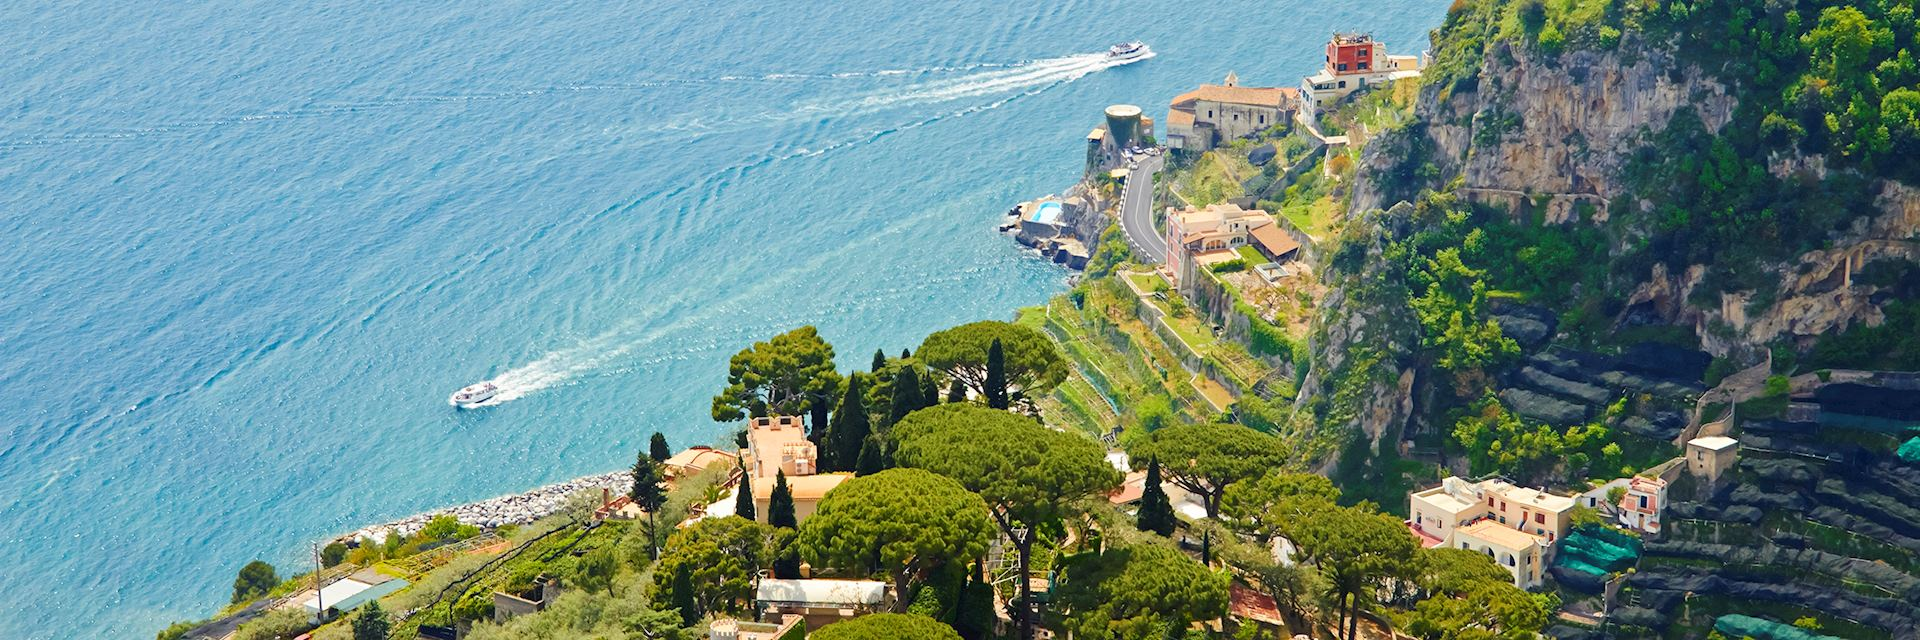 Best Time To Visit The Amalfi Coast Climate Guide Audley